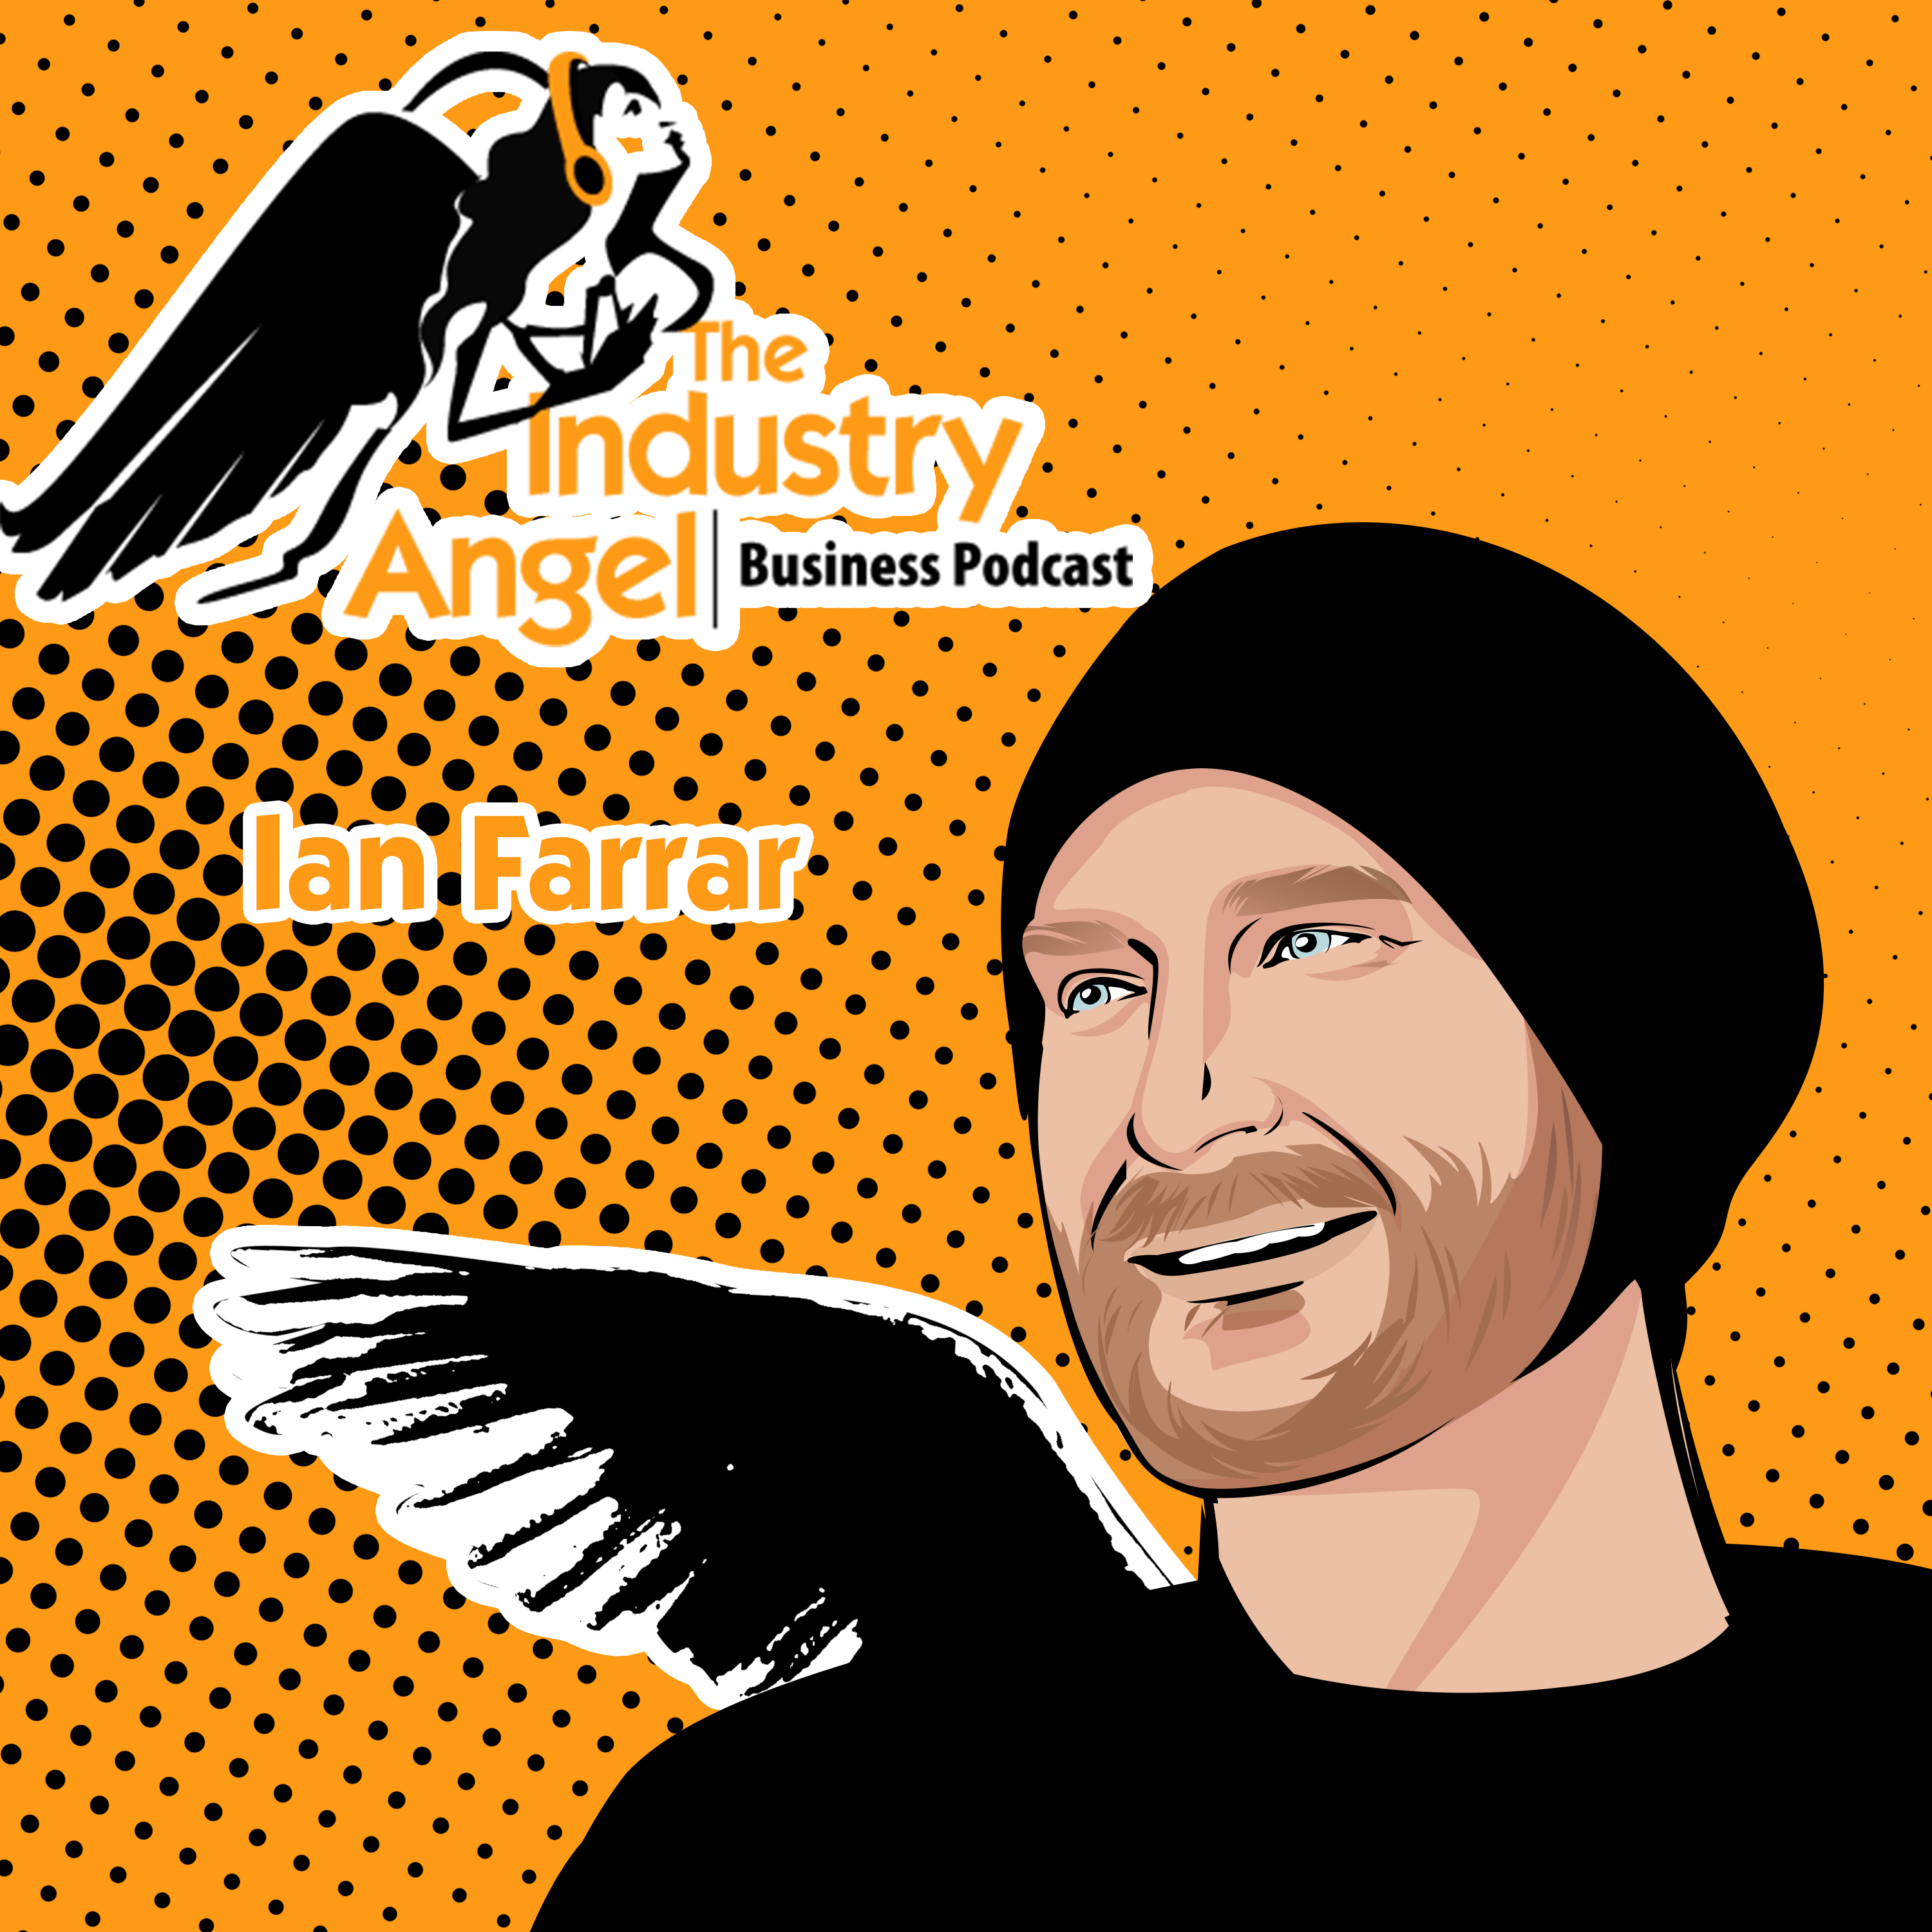 Industry Angel Business Podcast